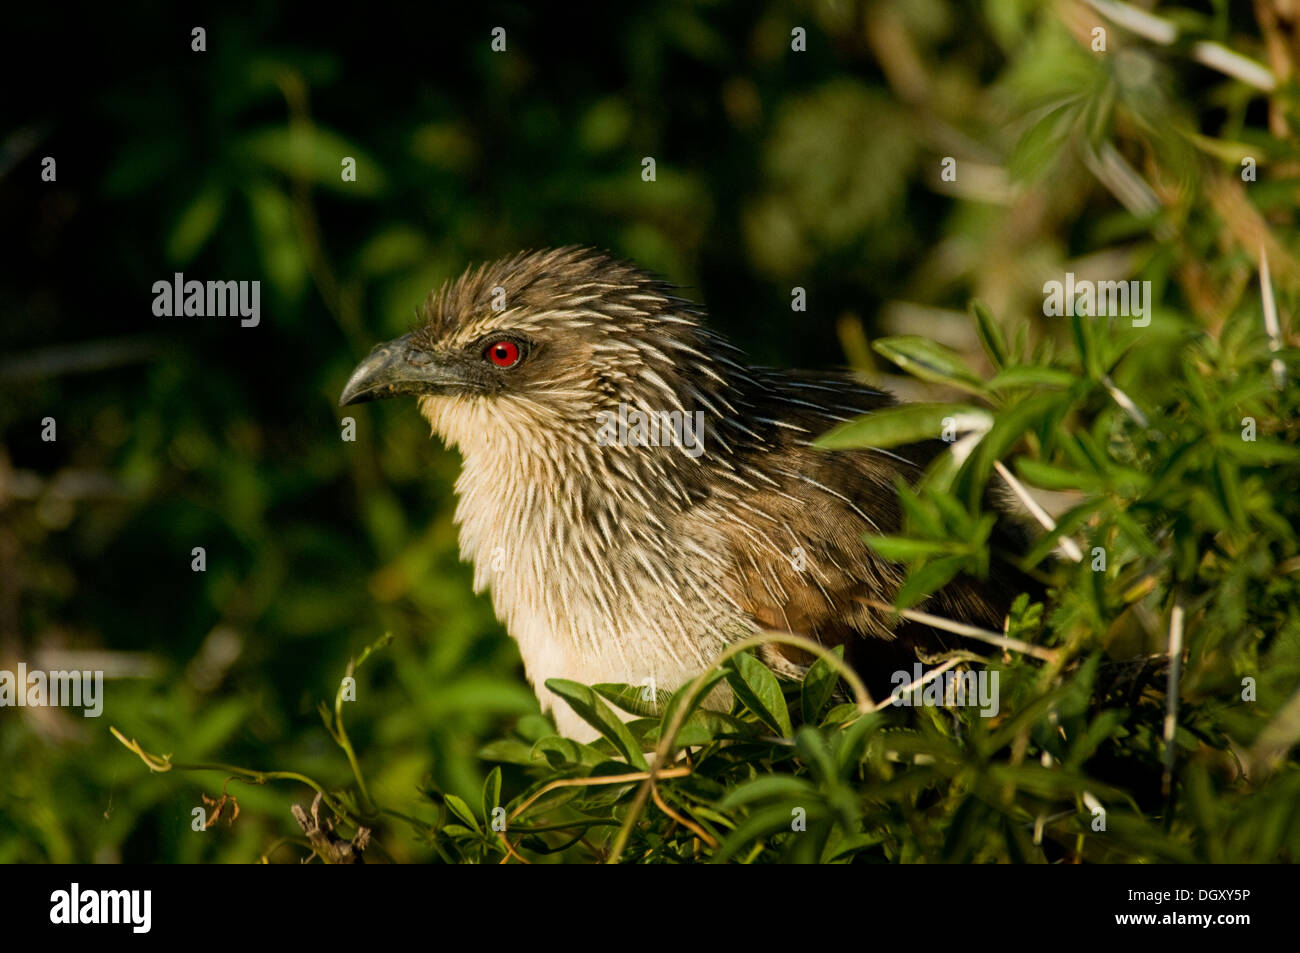 White-browed Coucal in bush (Centropus superciliosus) - Stock Image